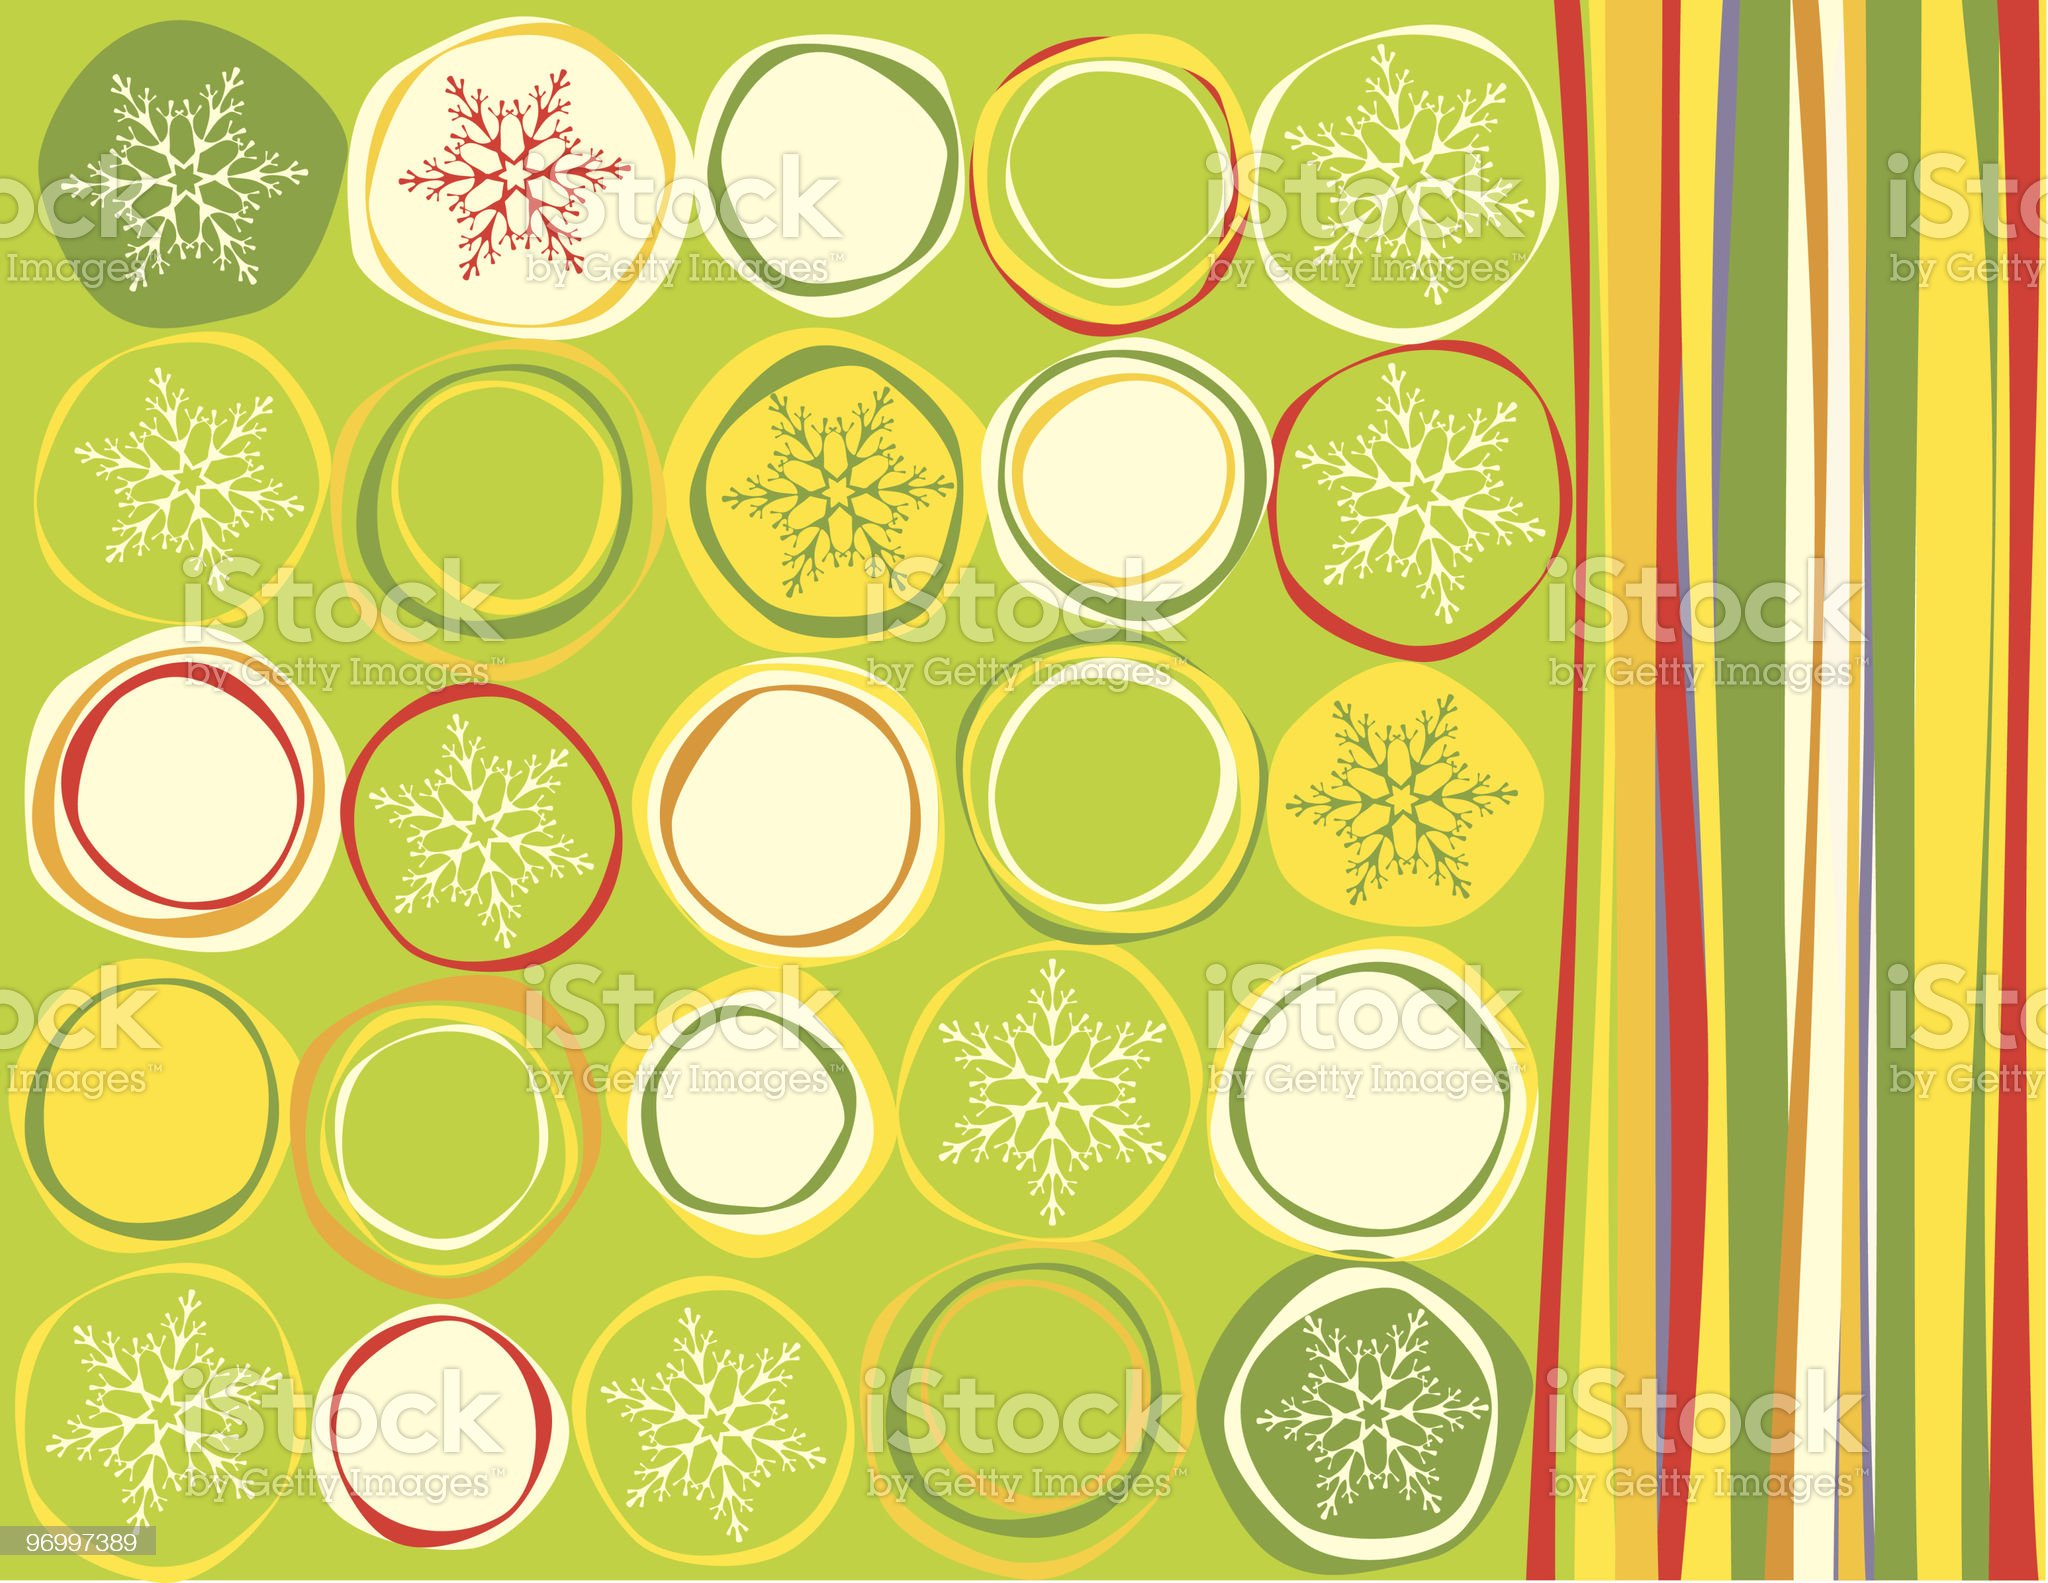 Holiday background 5 royalty-free stock vector art